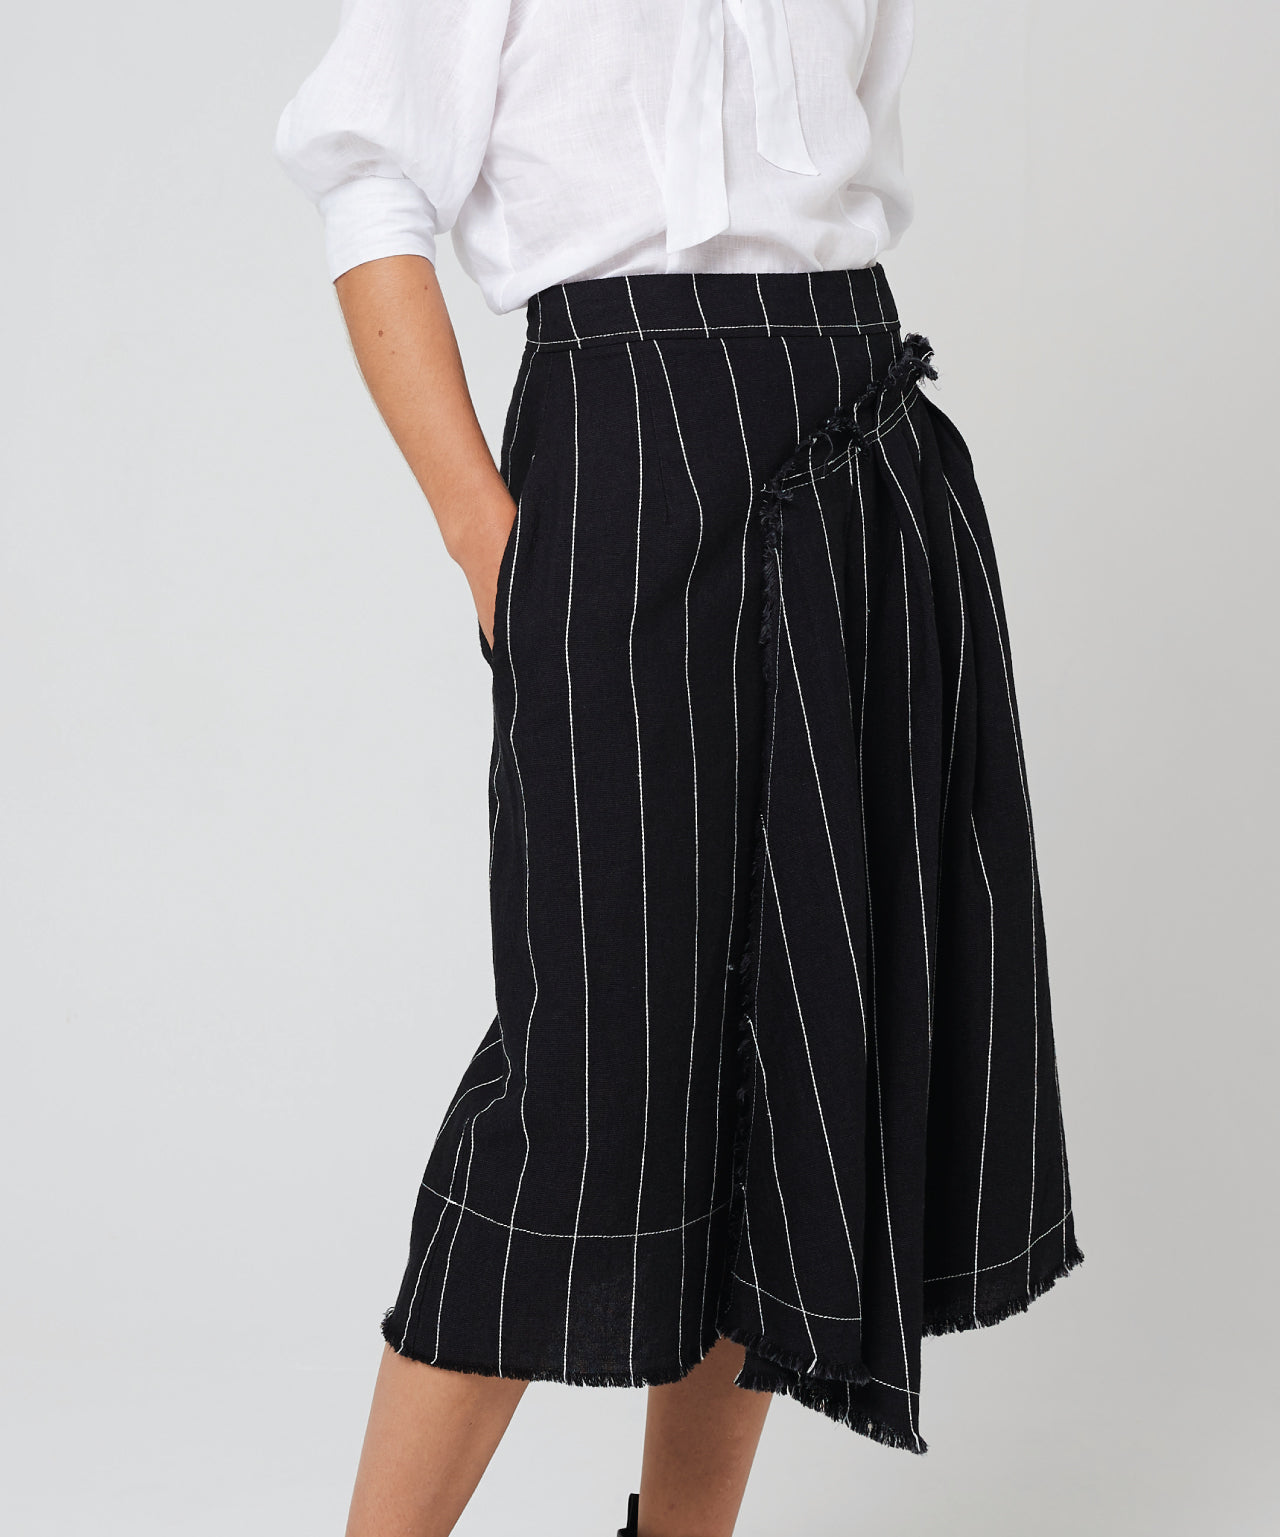 Morrison | Kimora Skirt - Black Stripe